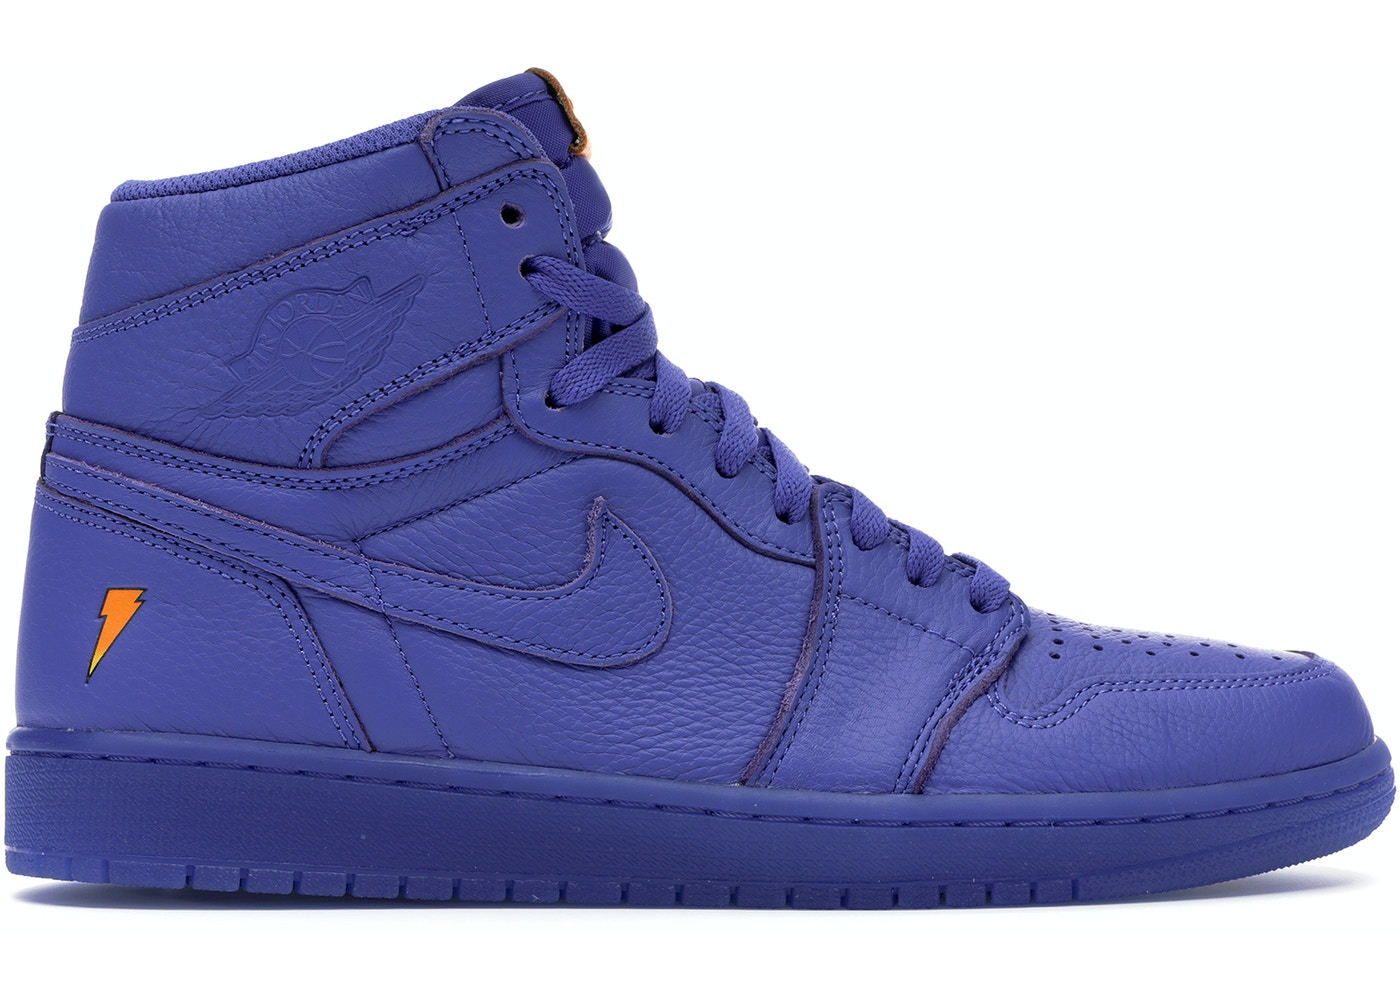 official photos 00052 00652 Jordan 1 Retro High Gatorade Rush Violet